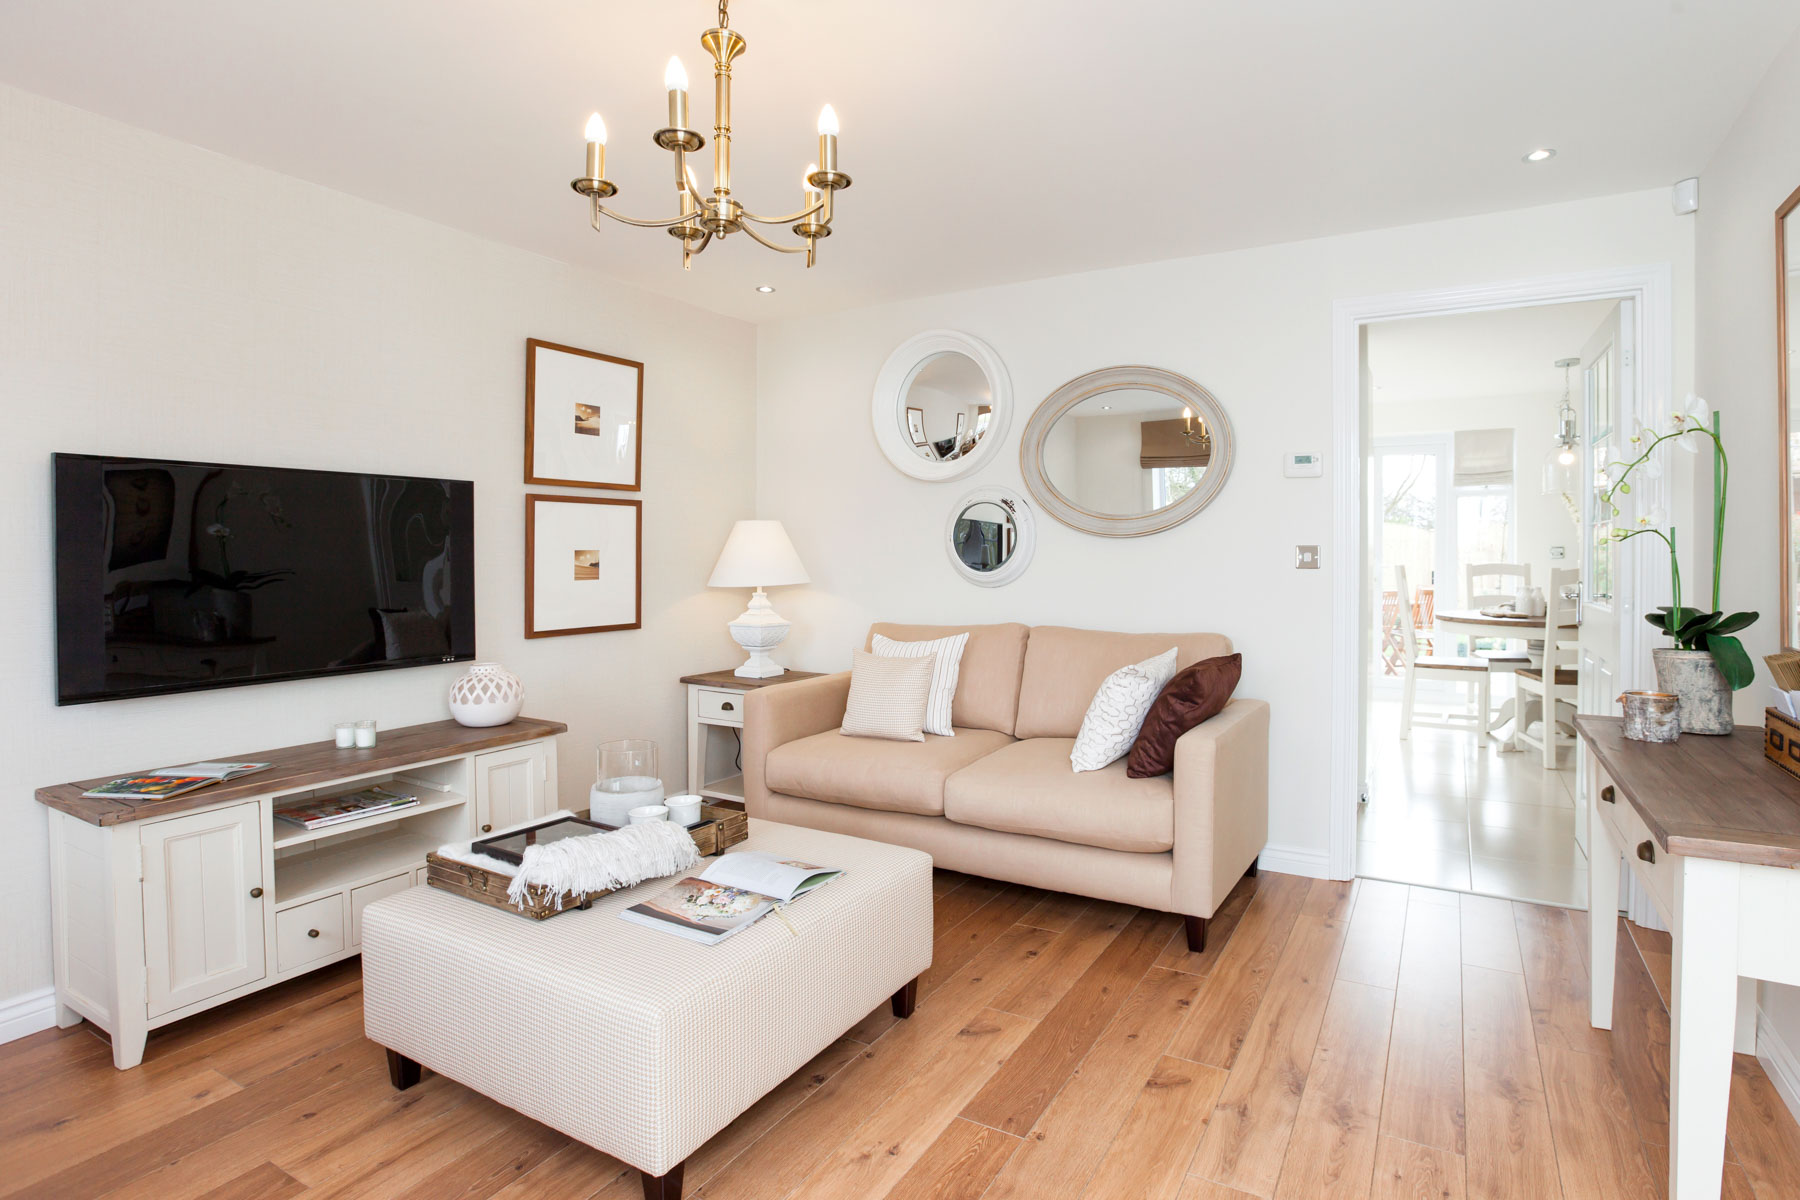 TW Exeter - Cranbrook - Gosford example living room 2